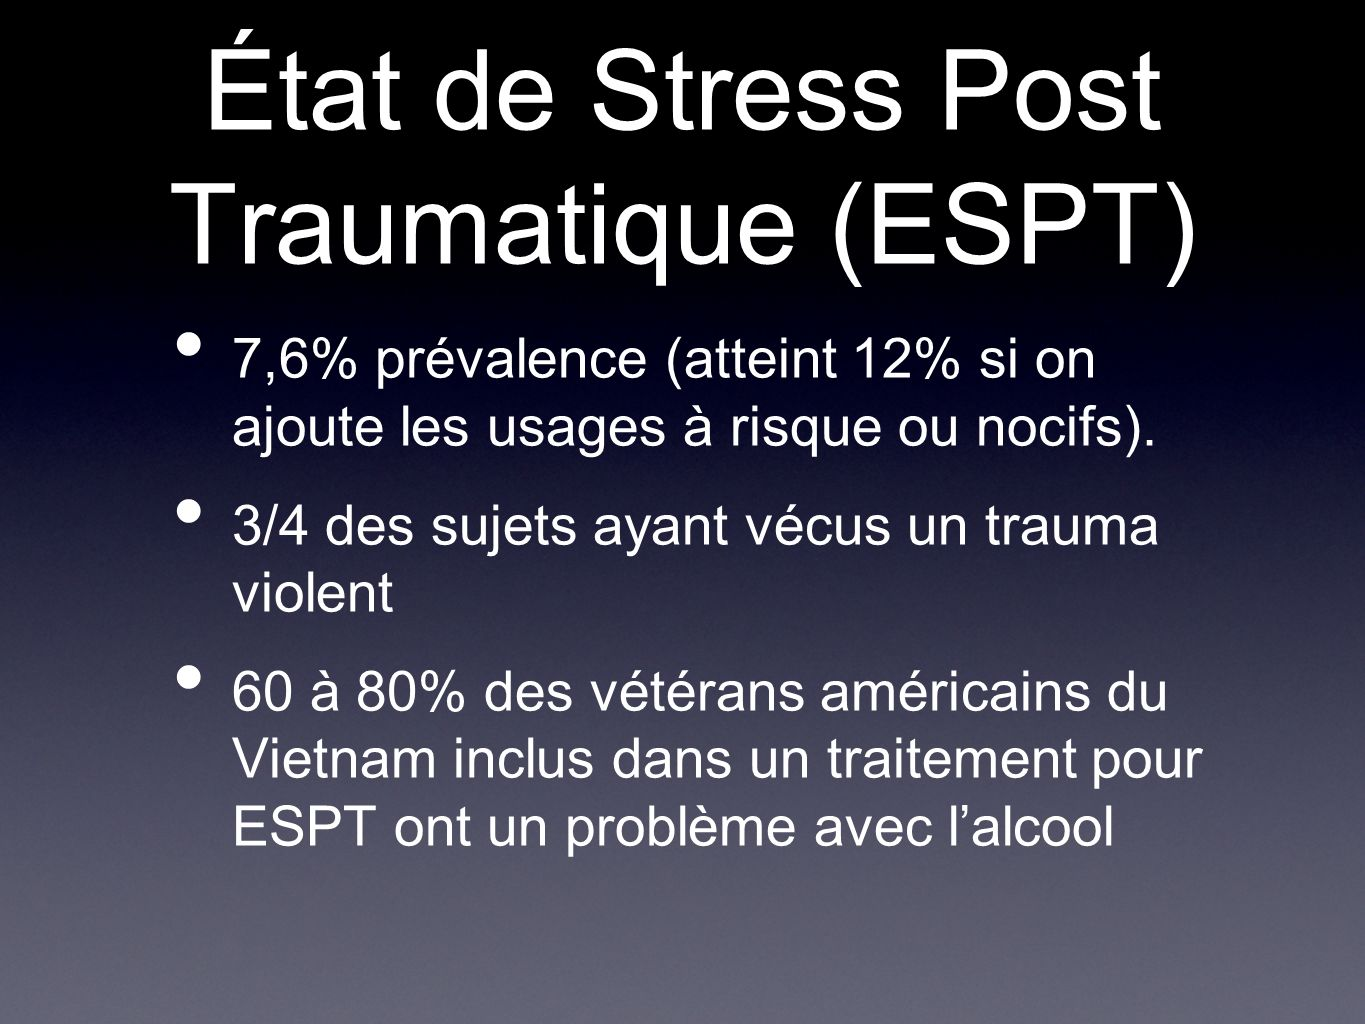 État de Stress Post Traumatique (ESPT)